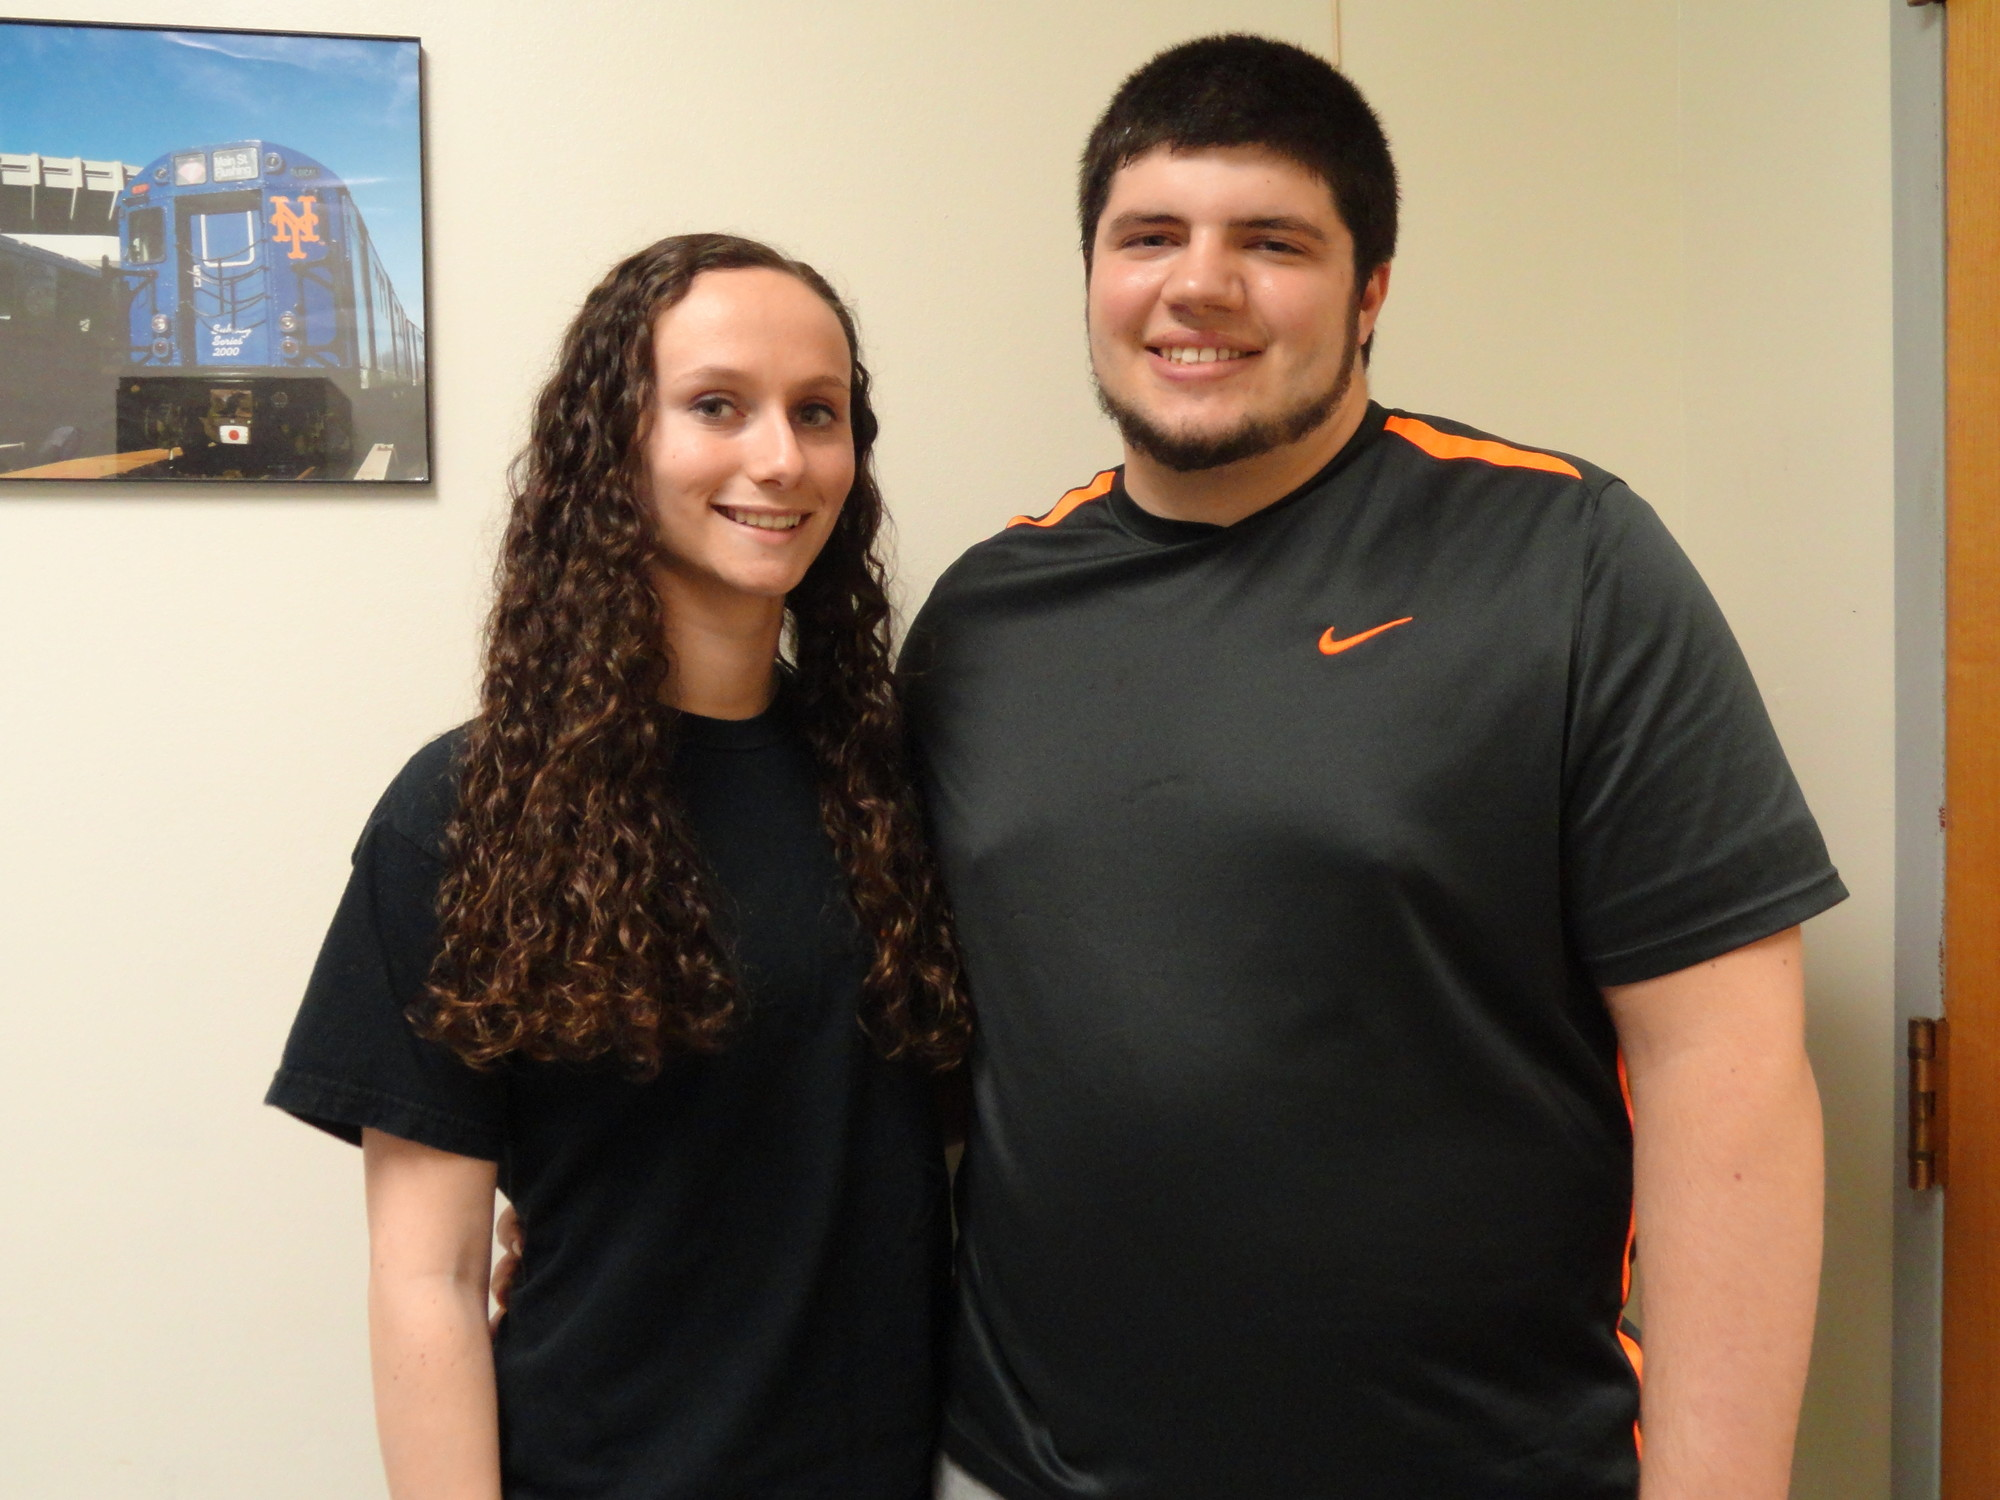 (L) Sean Nagy and Shannon O'Connell were H. Frank Carey High School's Seniors of the Month in Feb.